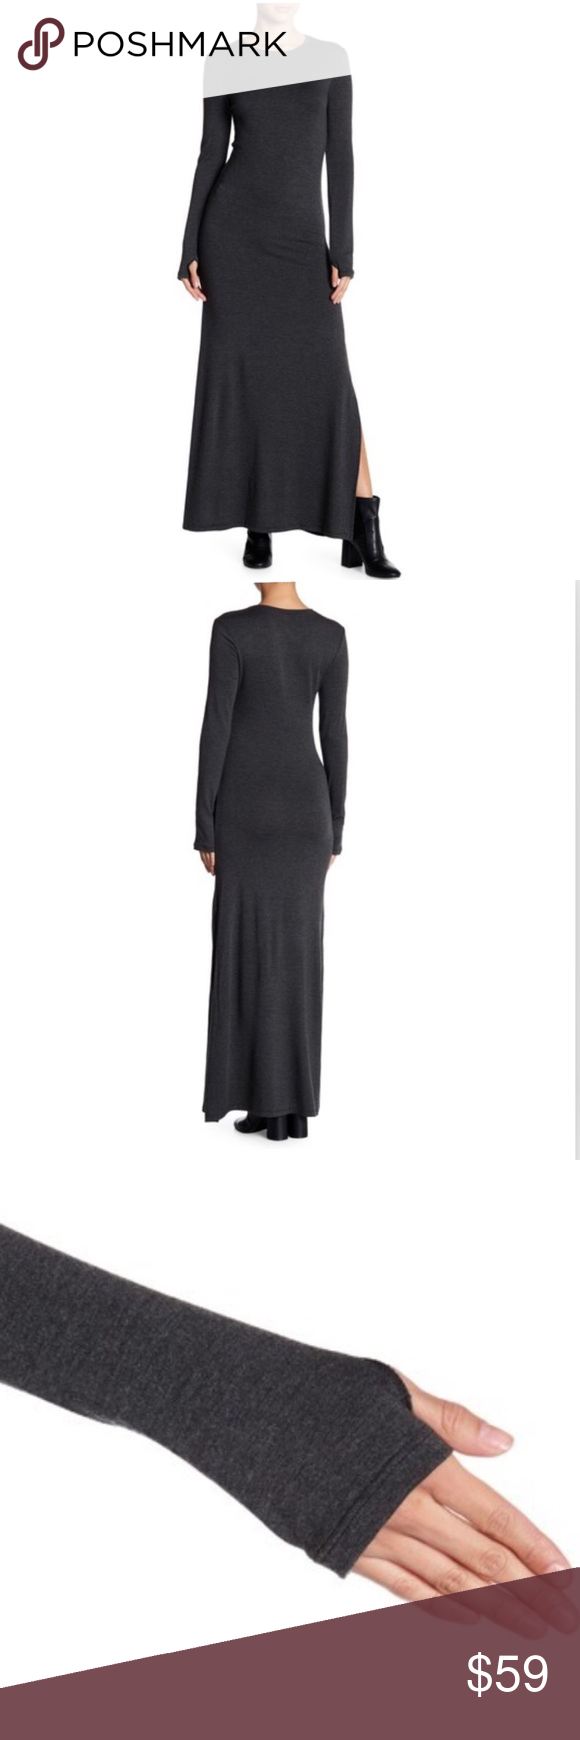 Go couture maxi dress stretch long sleeve crew nwt maxi dresses